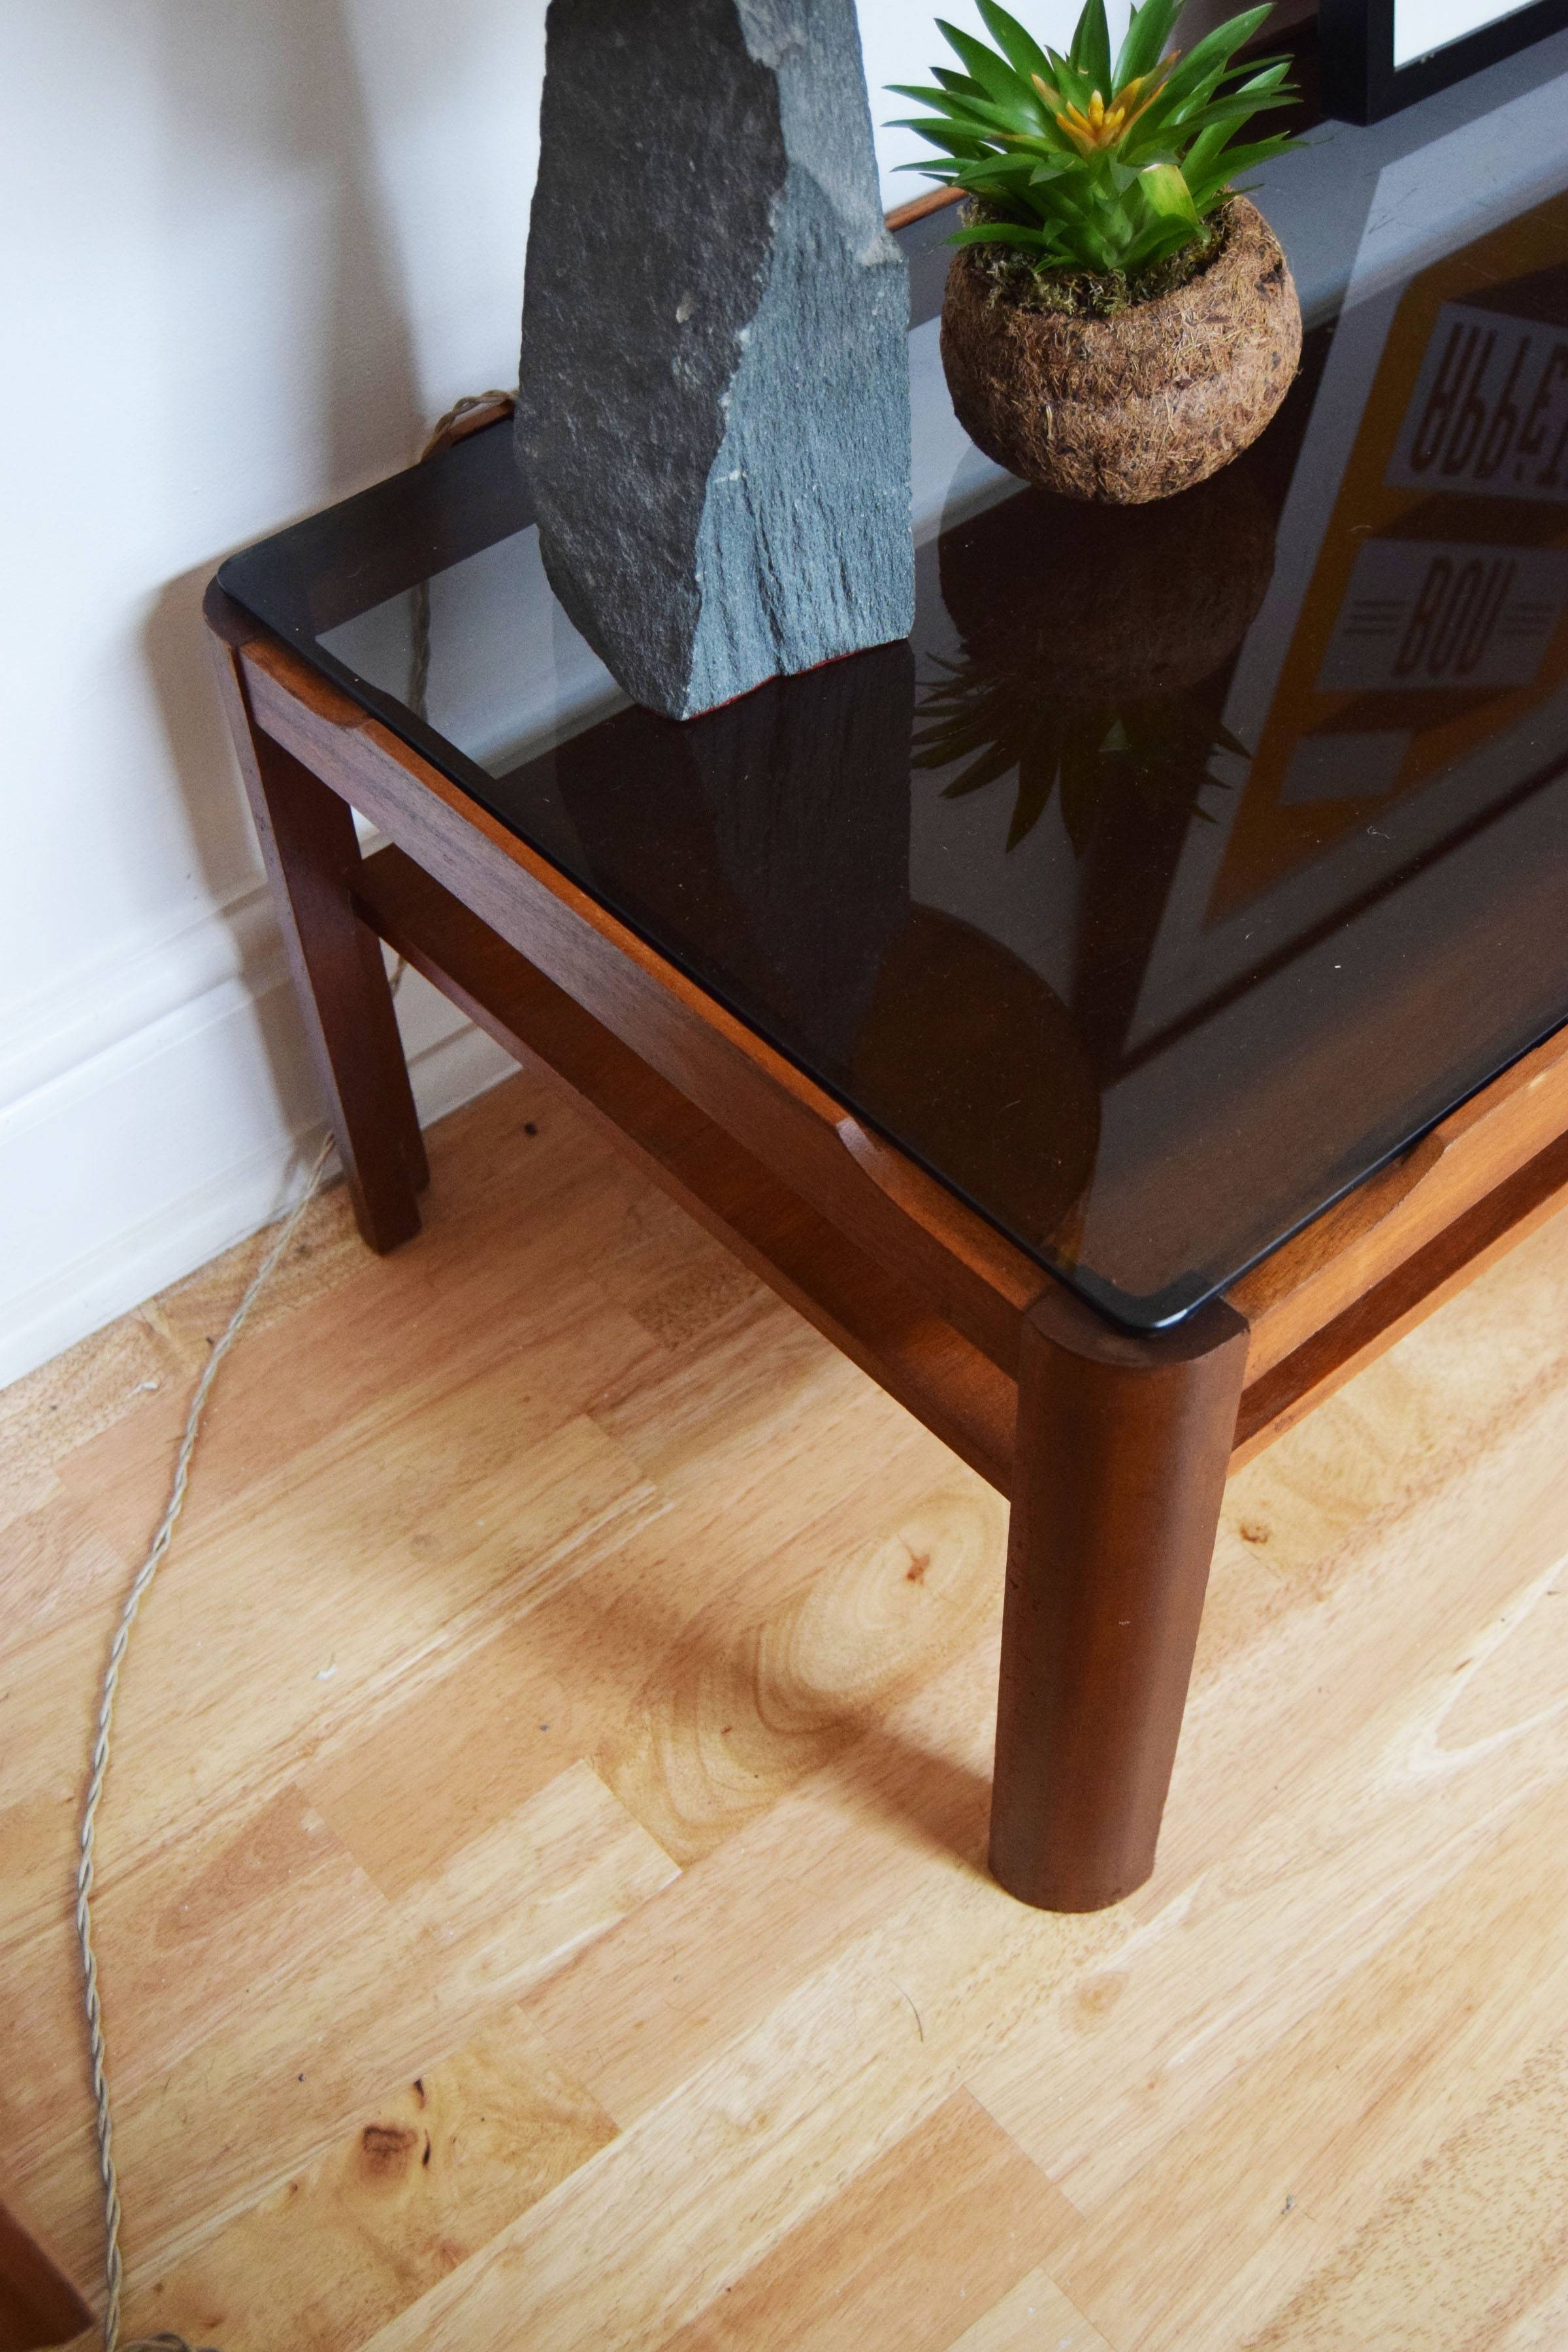 Wooden Coffee Table /smoked Glass / Side Table Vintage / Retro Intended For Retro Smoked Glass Coffee Tables (View 12 of 30)